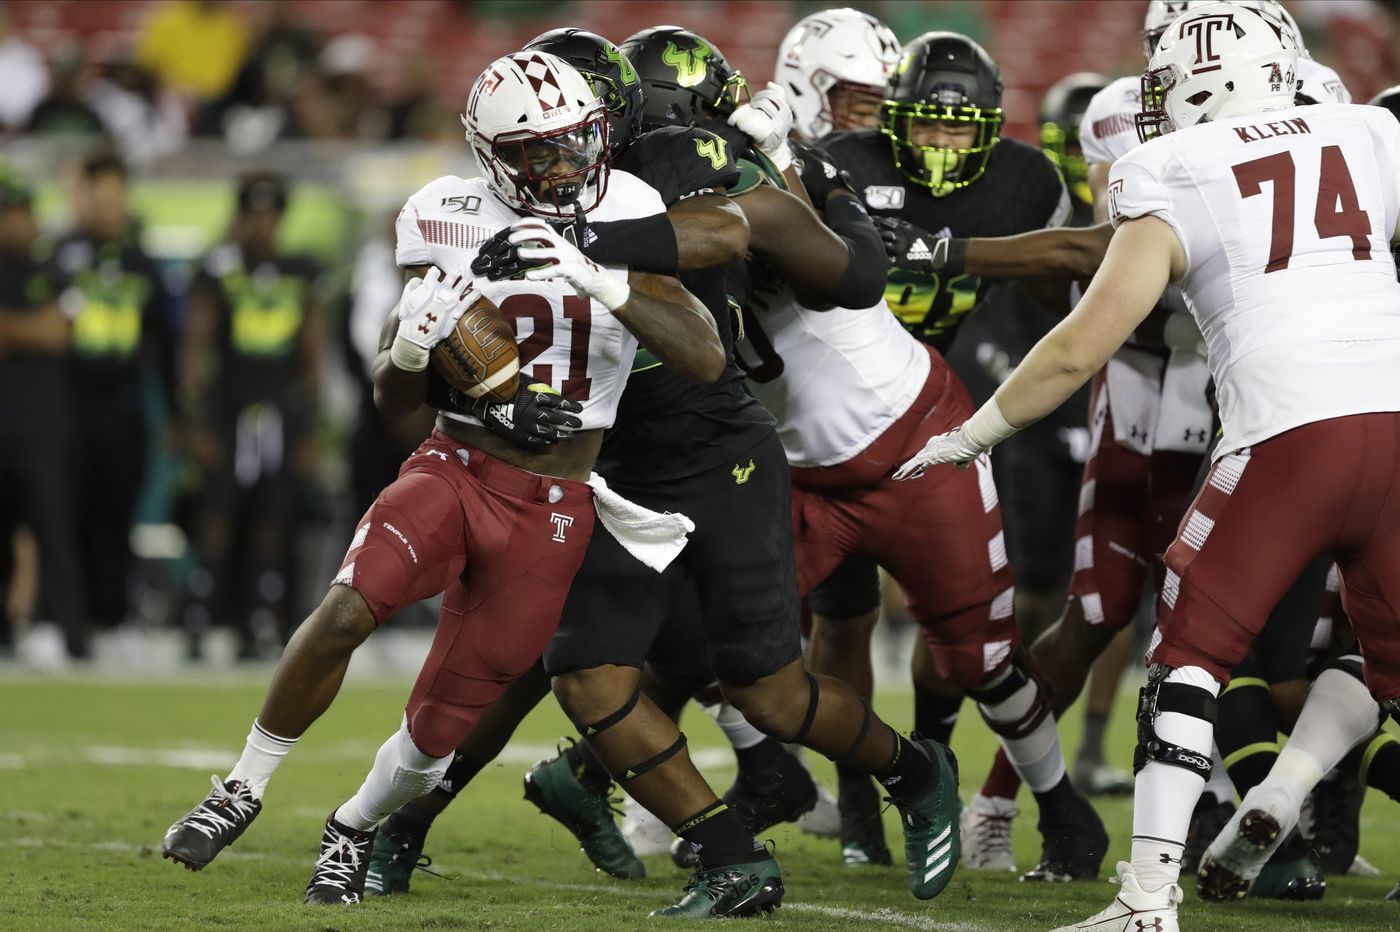 Temple's defense comes up big with nine sacks in 17-7 win at South Florida